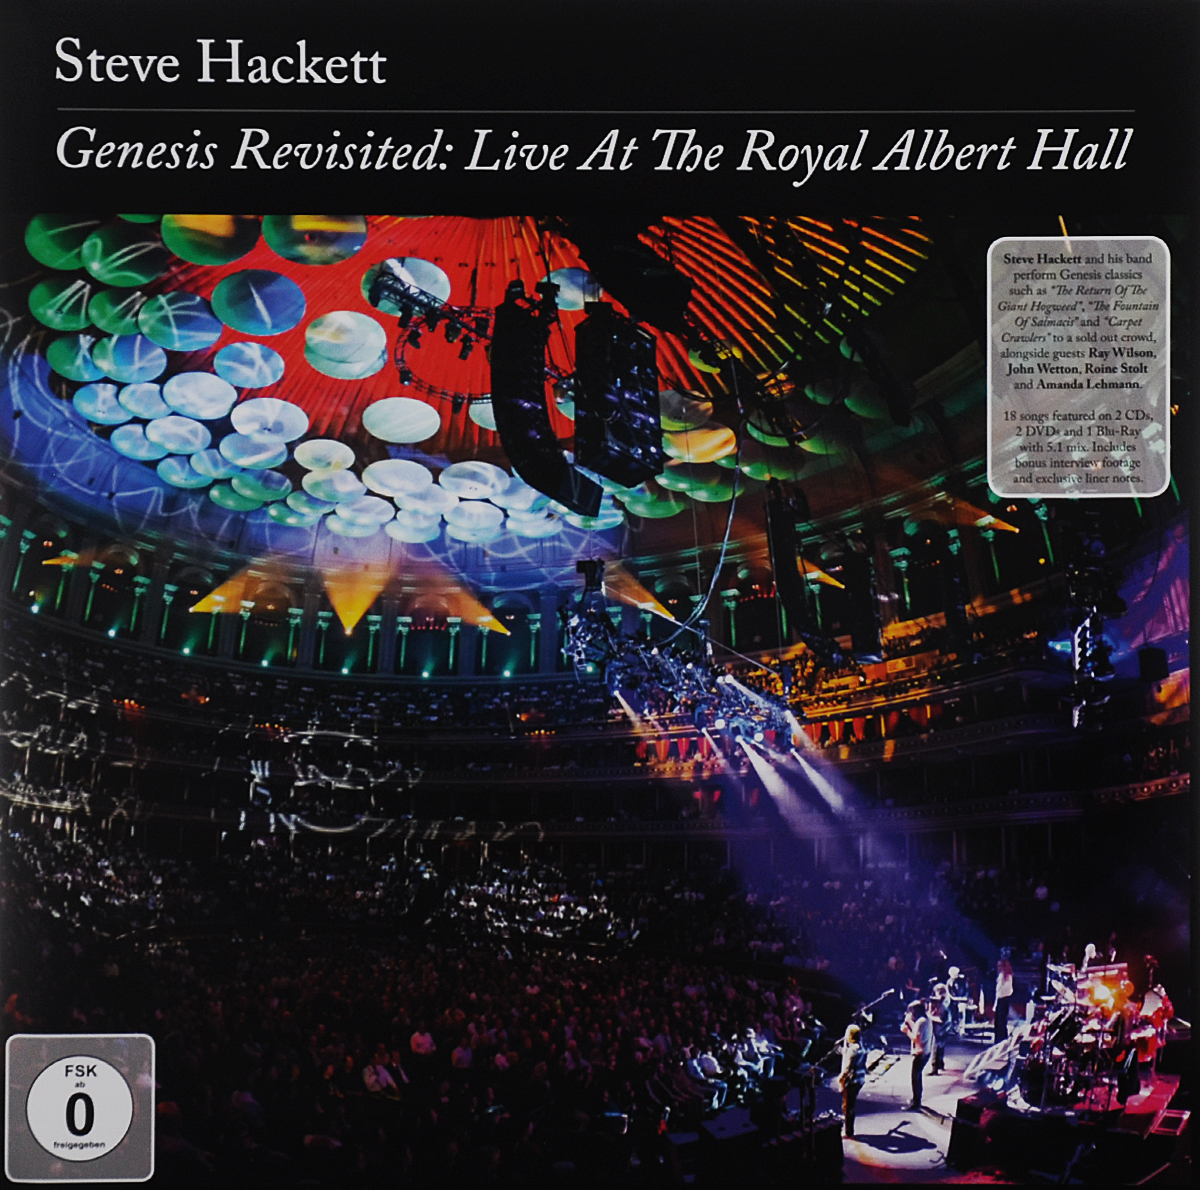 Стив Хэкетт Steve Hackett. Genesis Revisited. Live At The Royal Albert Hall (2 CD + 2 DVD + Blu-ray) crossroads revisited cd